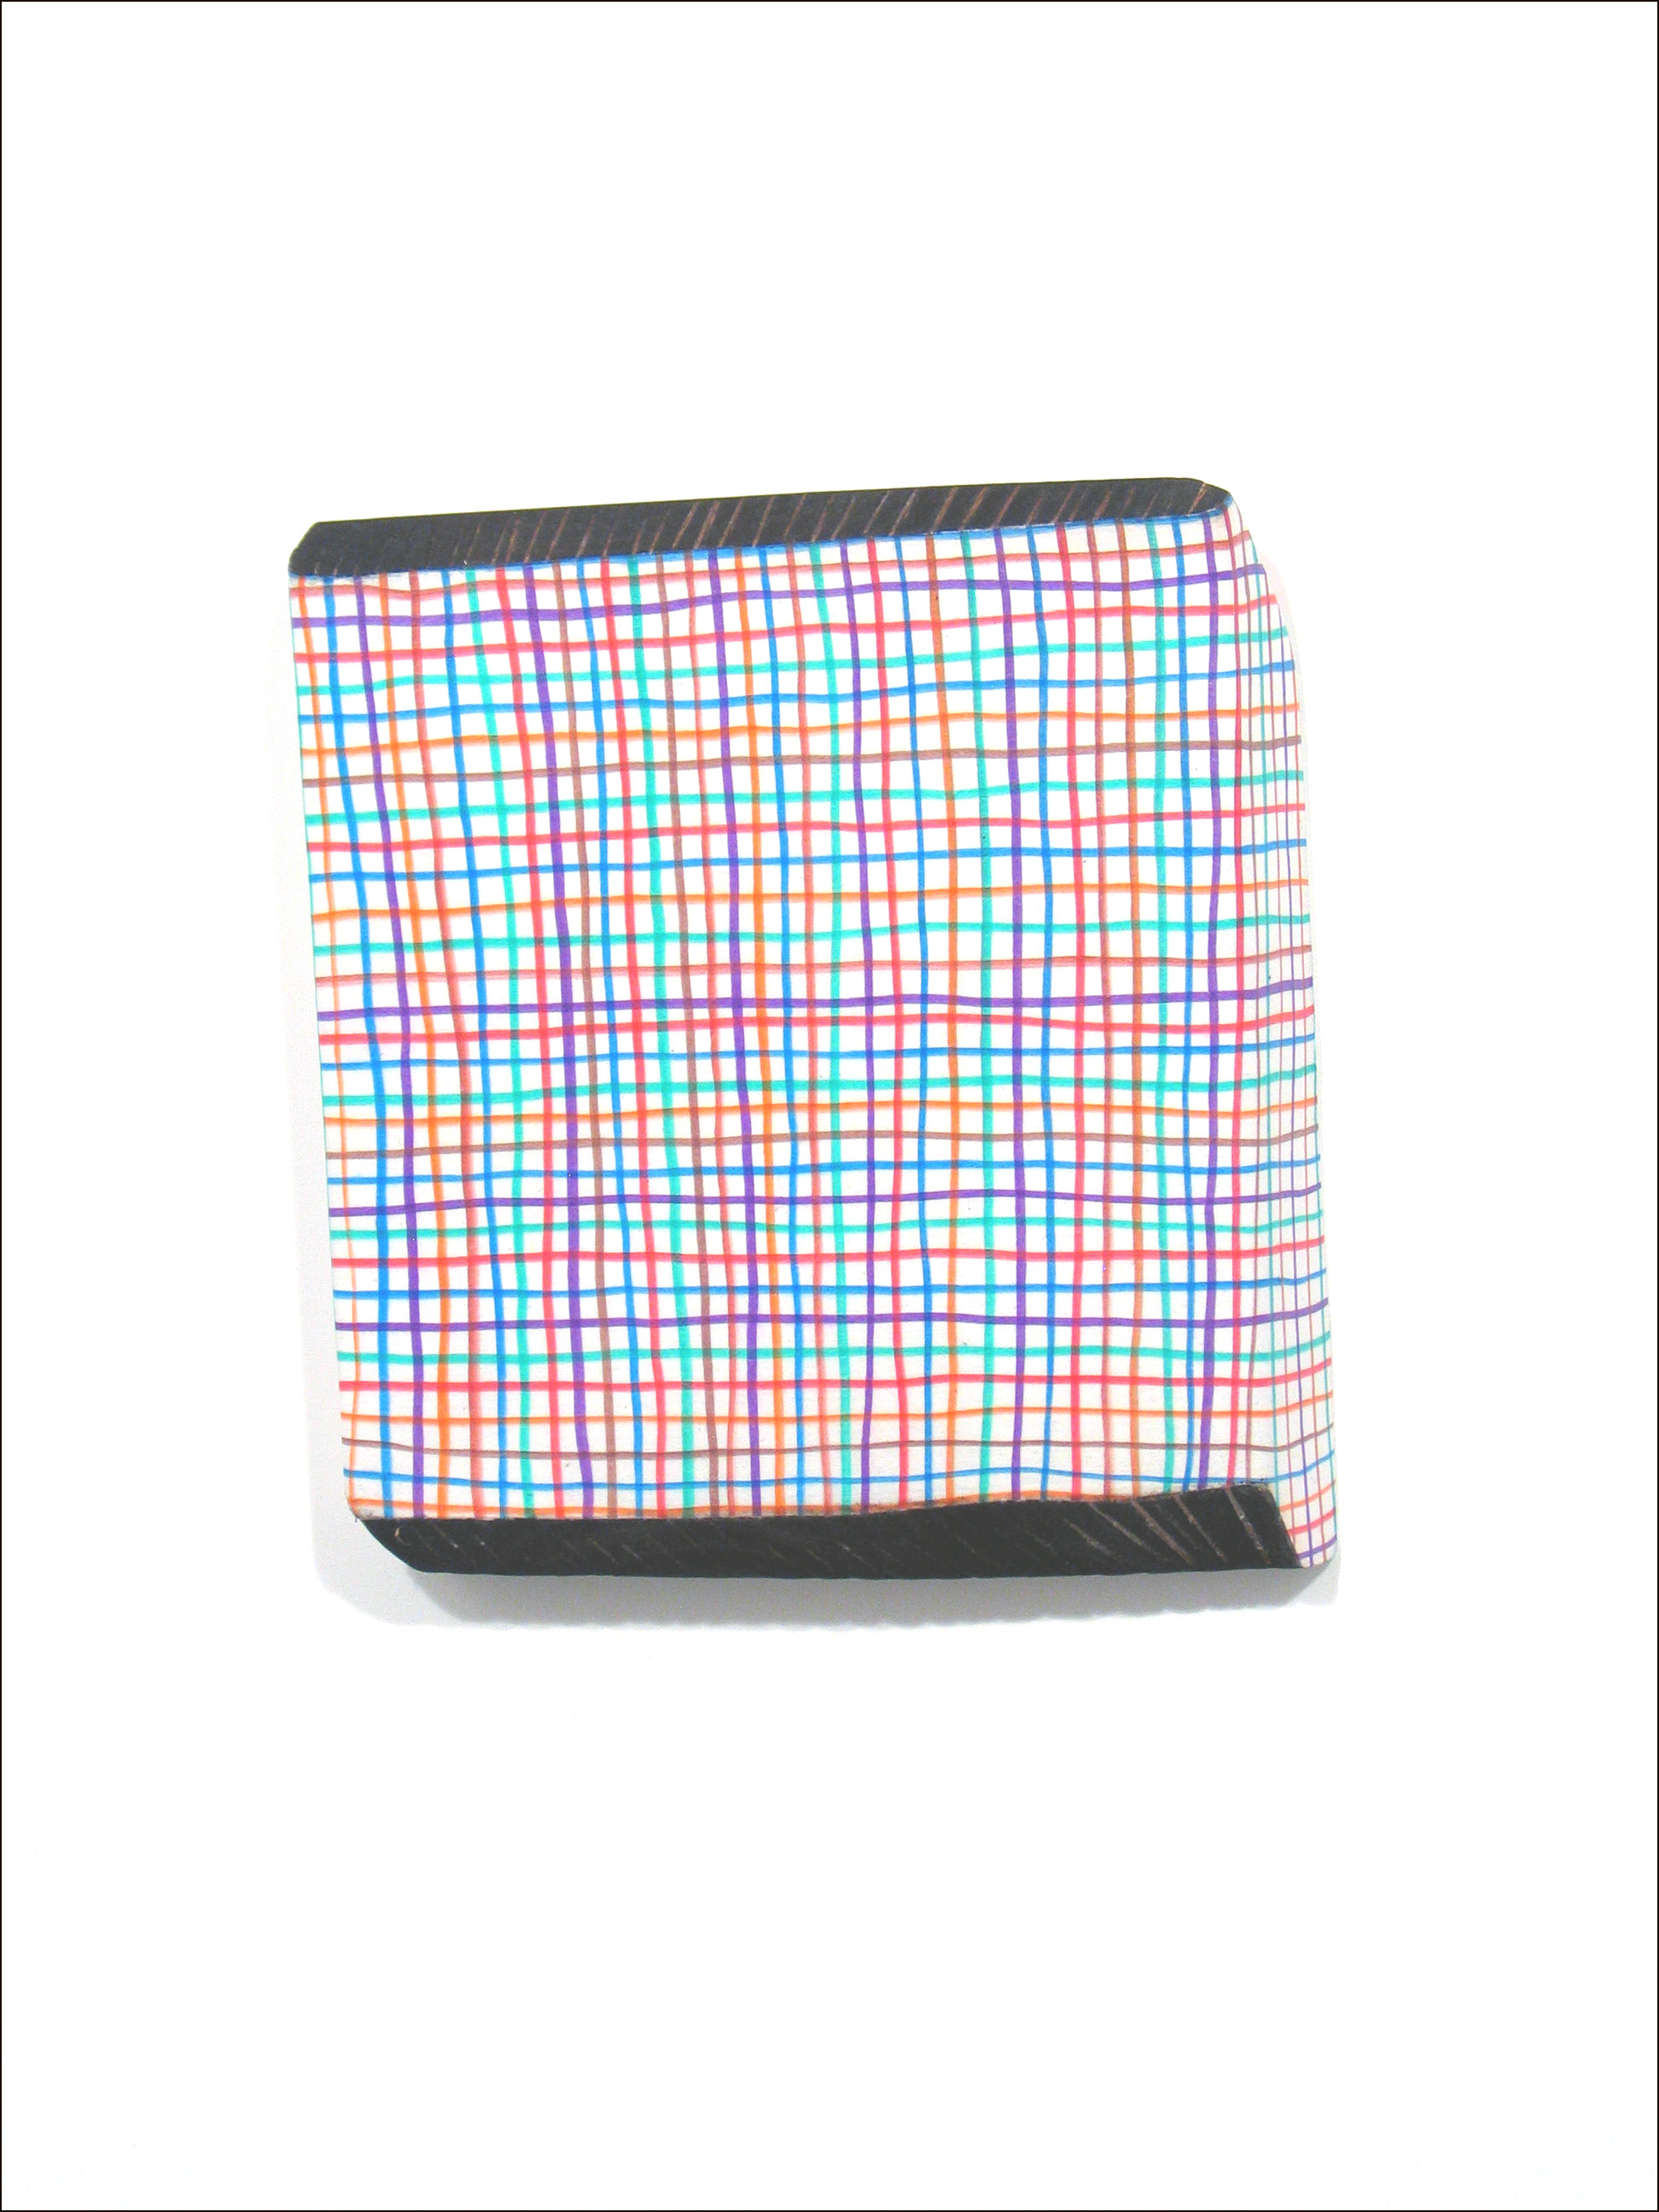 Plaid Wall Box 10x9.5x1.5 in in